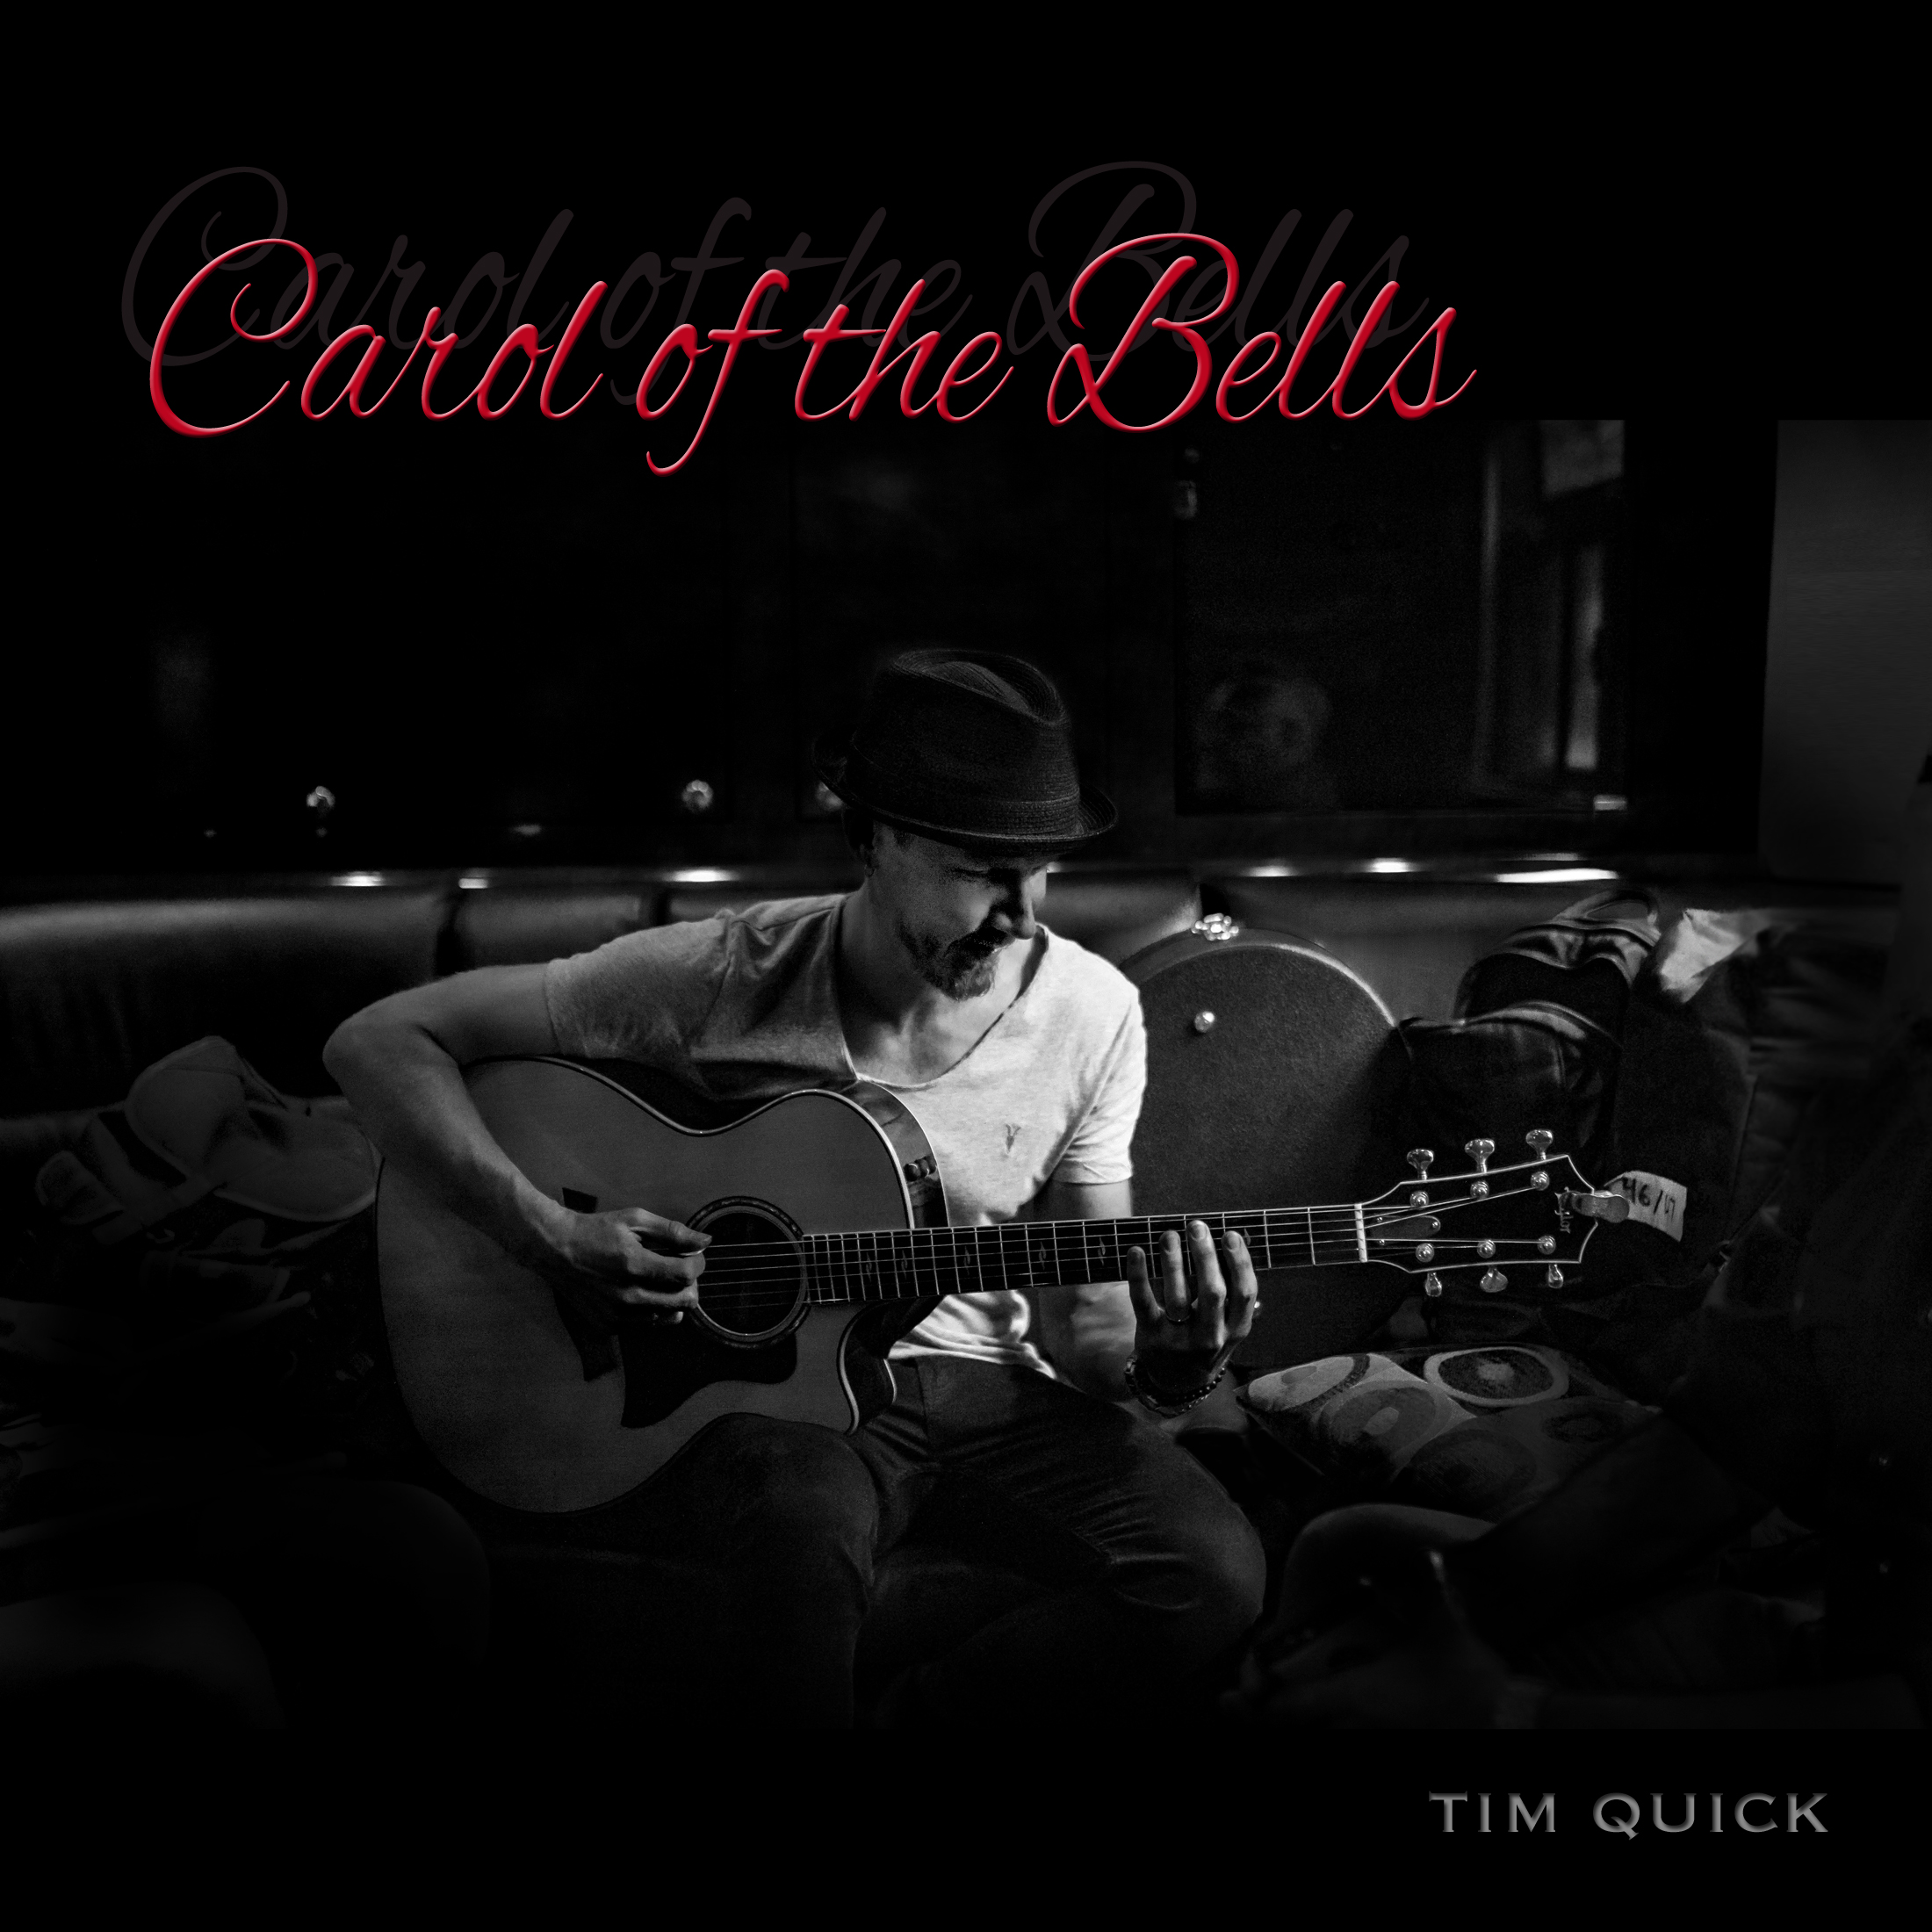 carol of the bells7.jpg